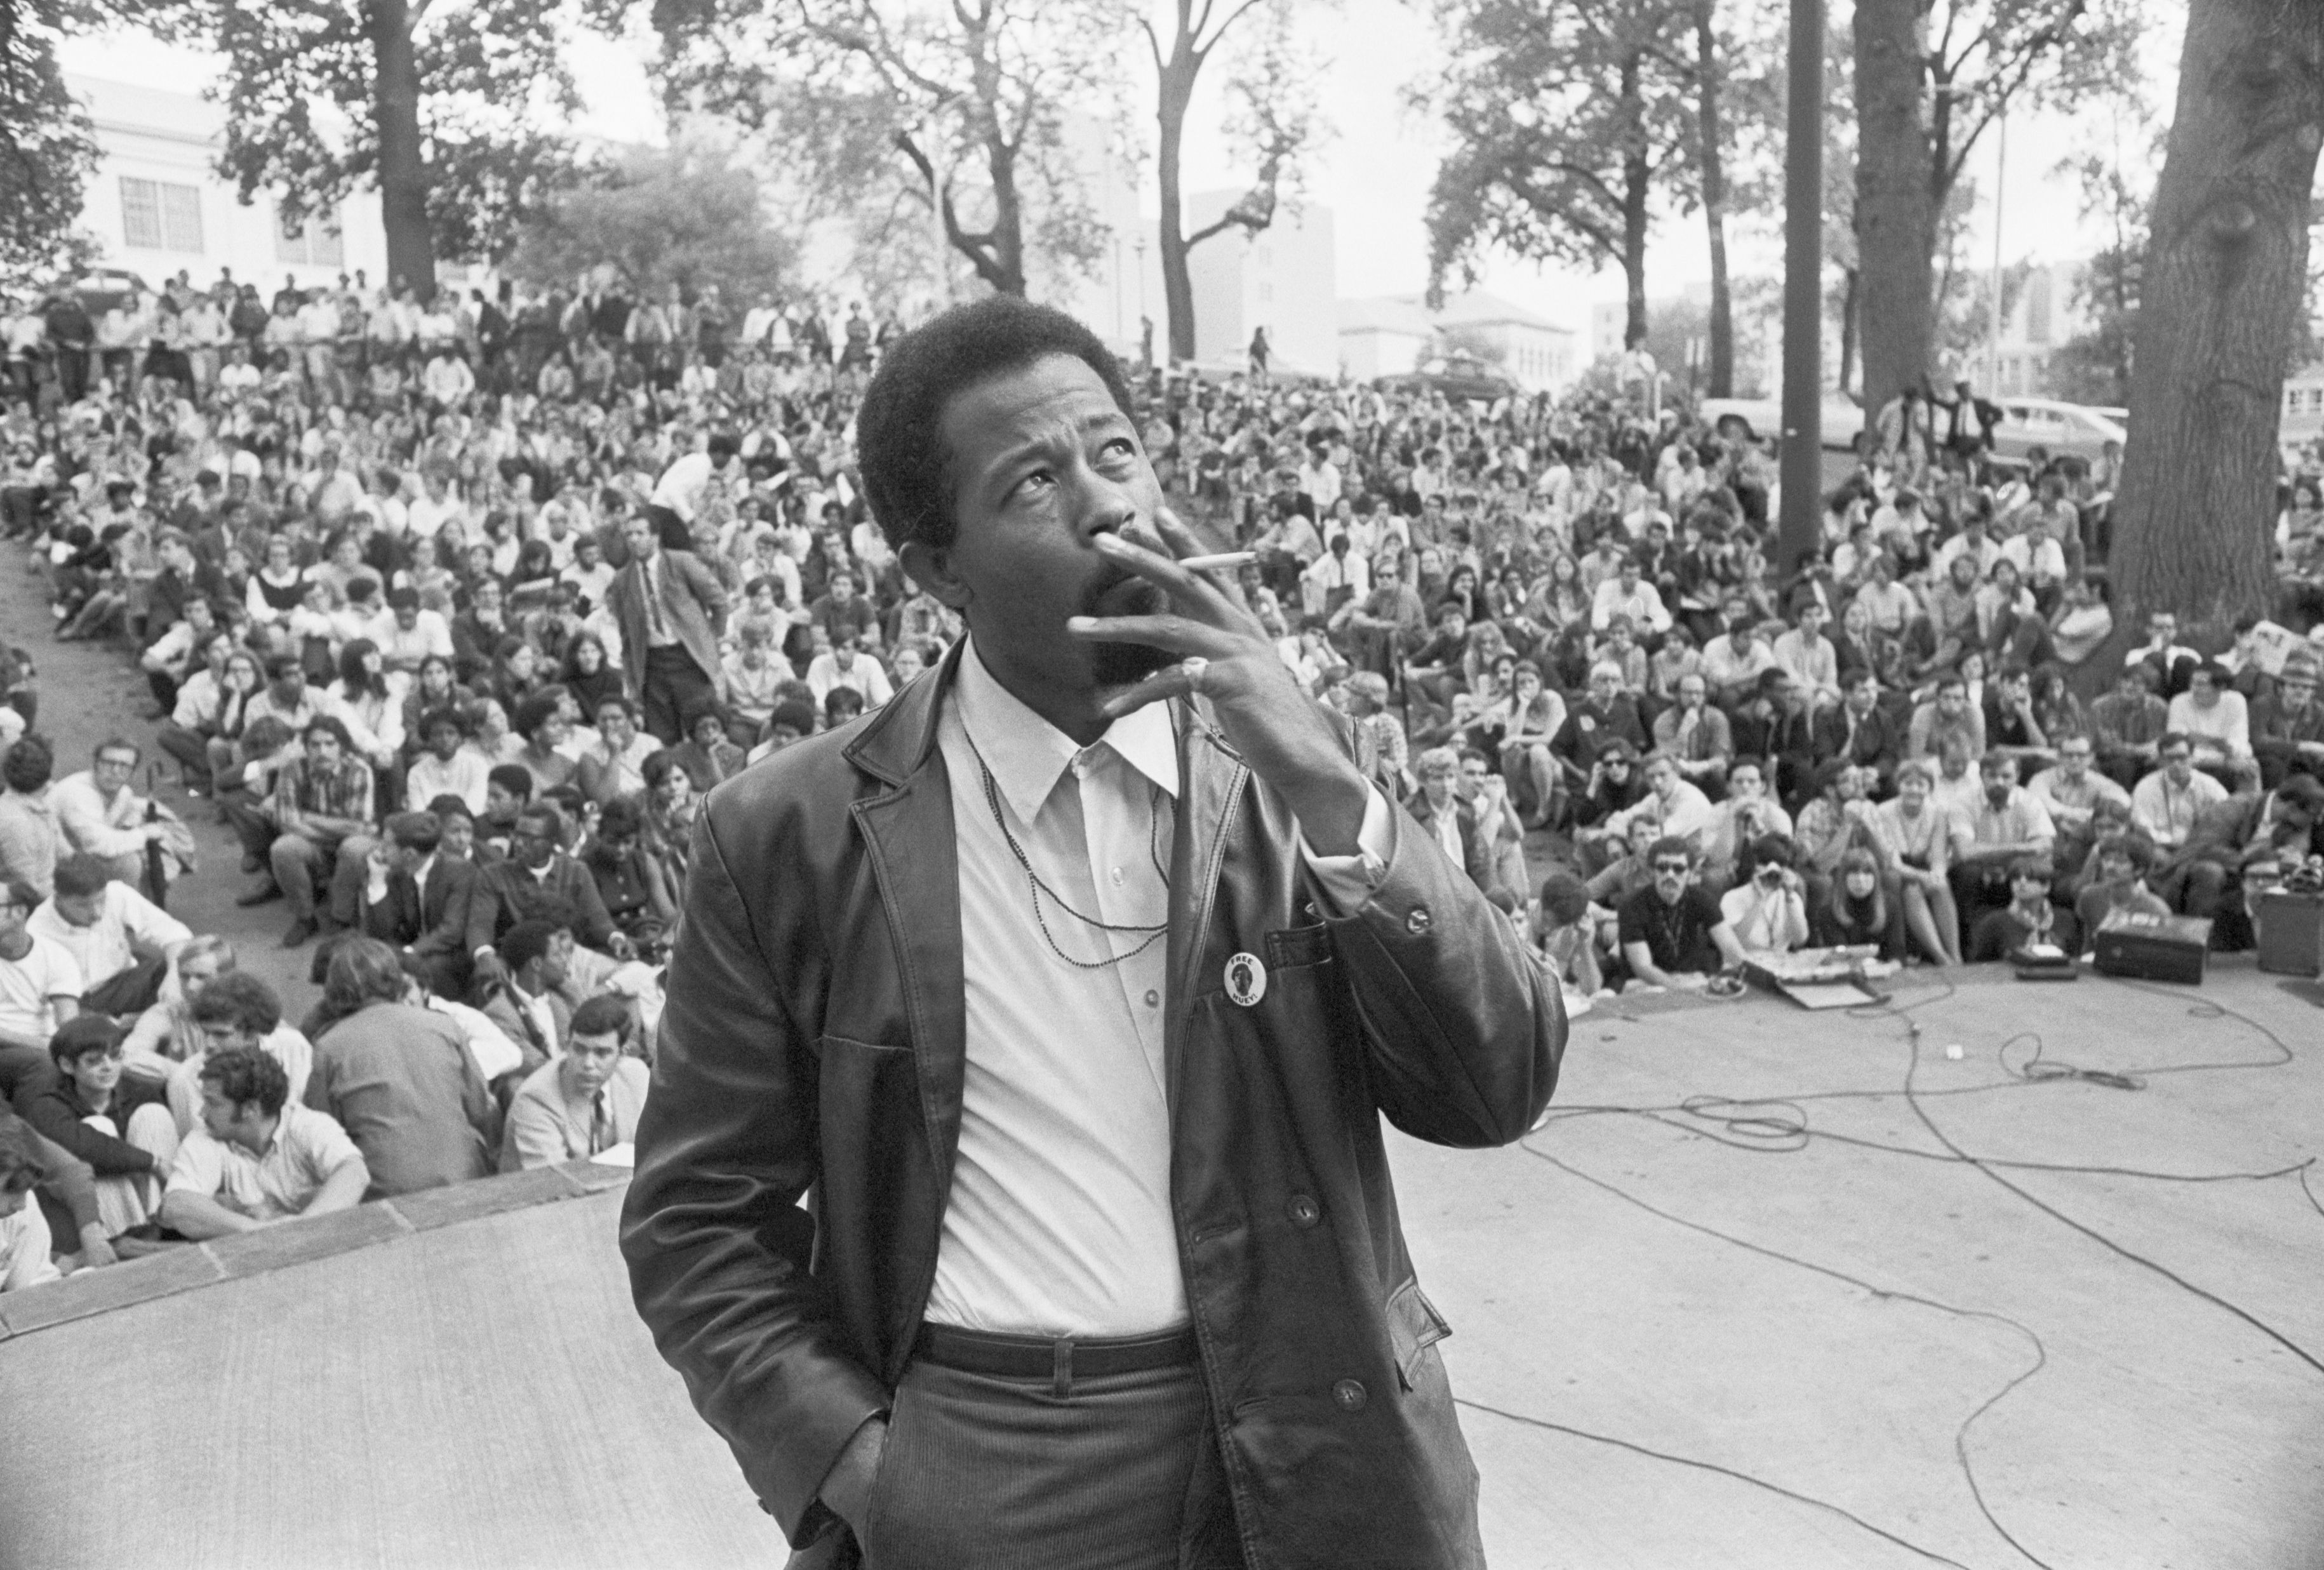 Eldridge Cleaver with Back to Student Crowd